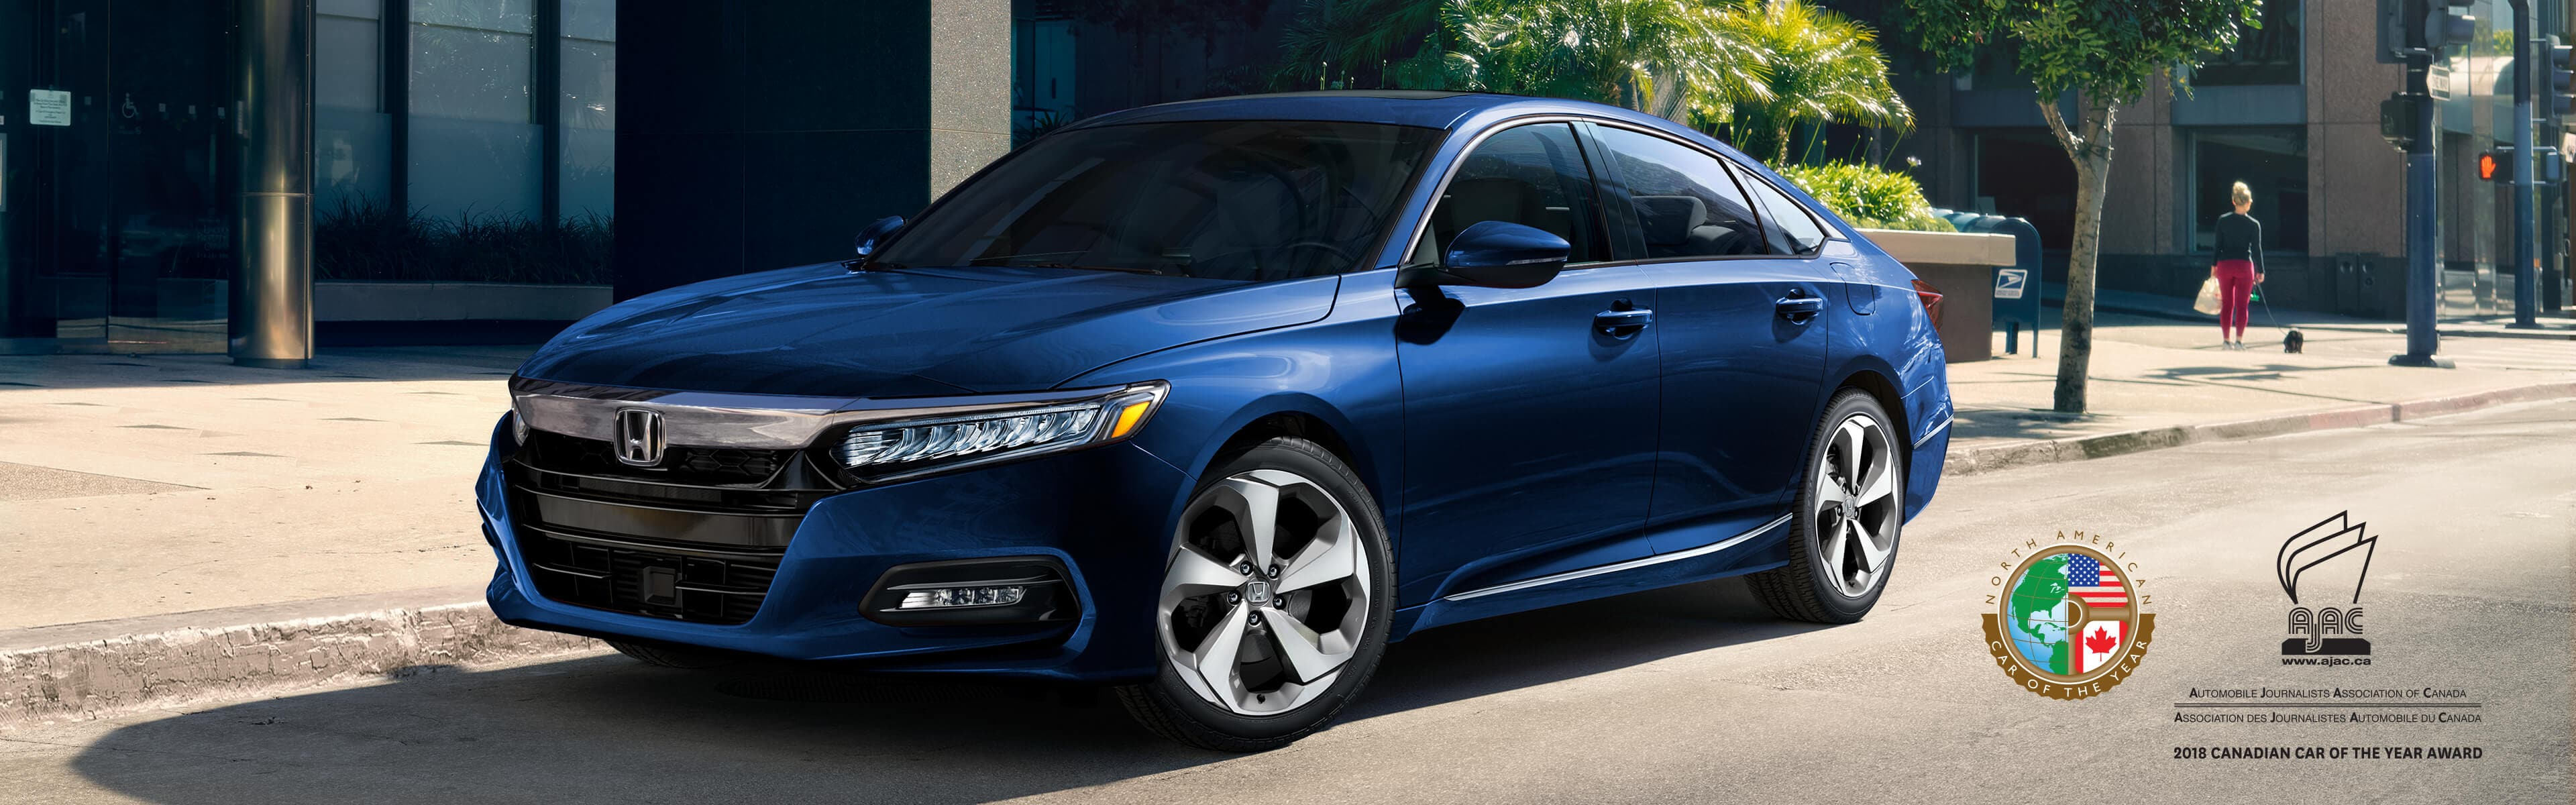 Meet The 2018 Honda Accord Family At Our New Glasgow, NS Dealership